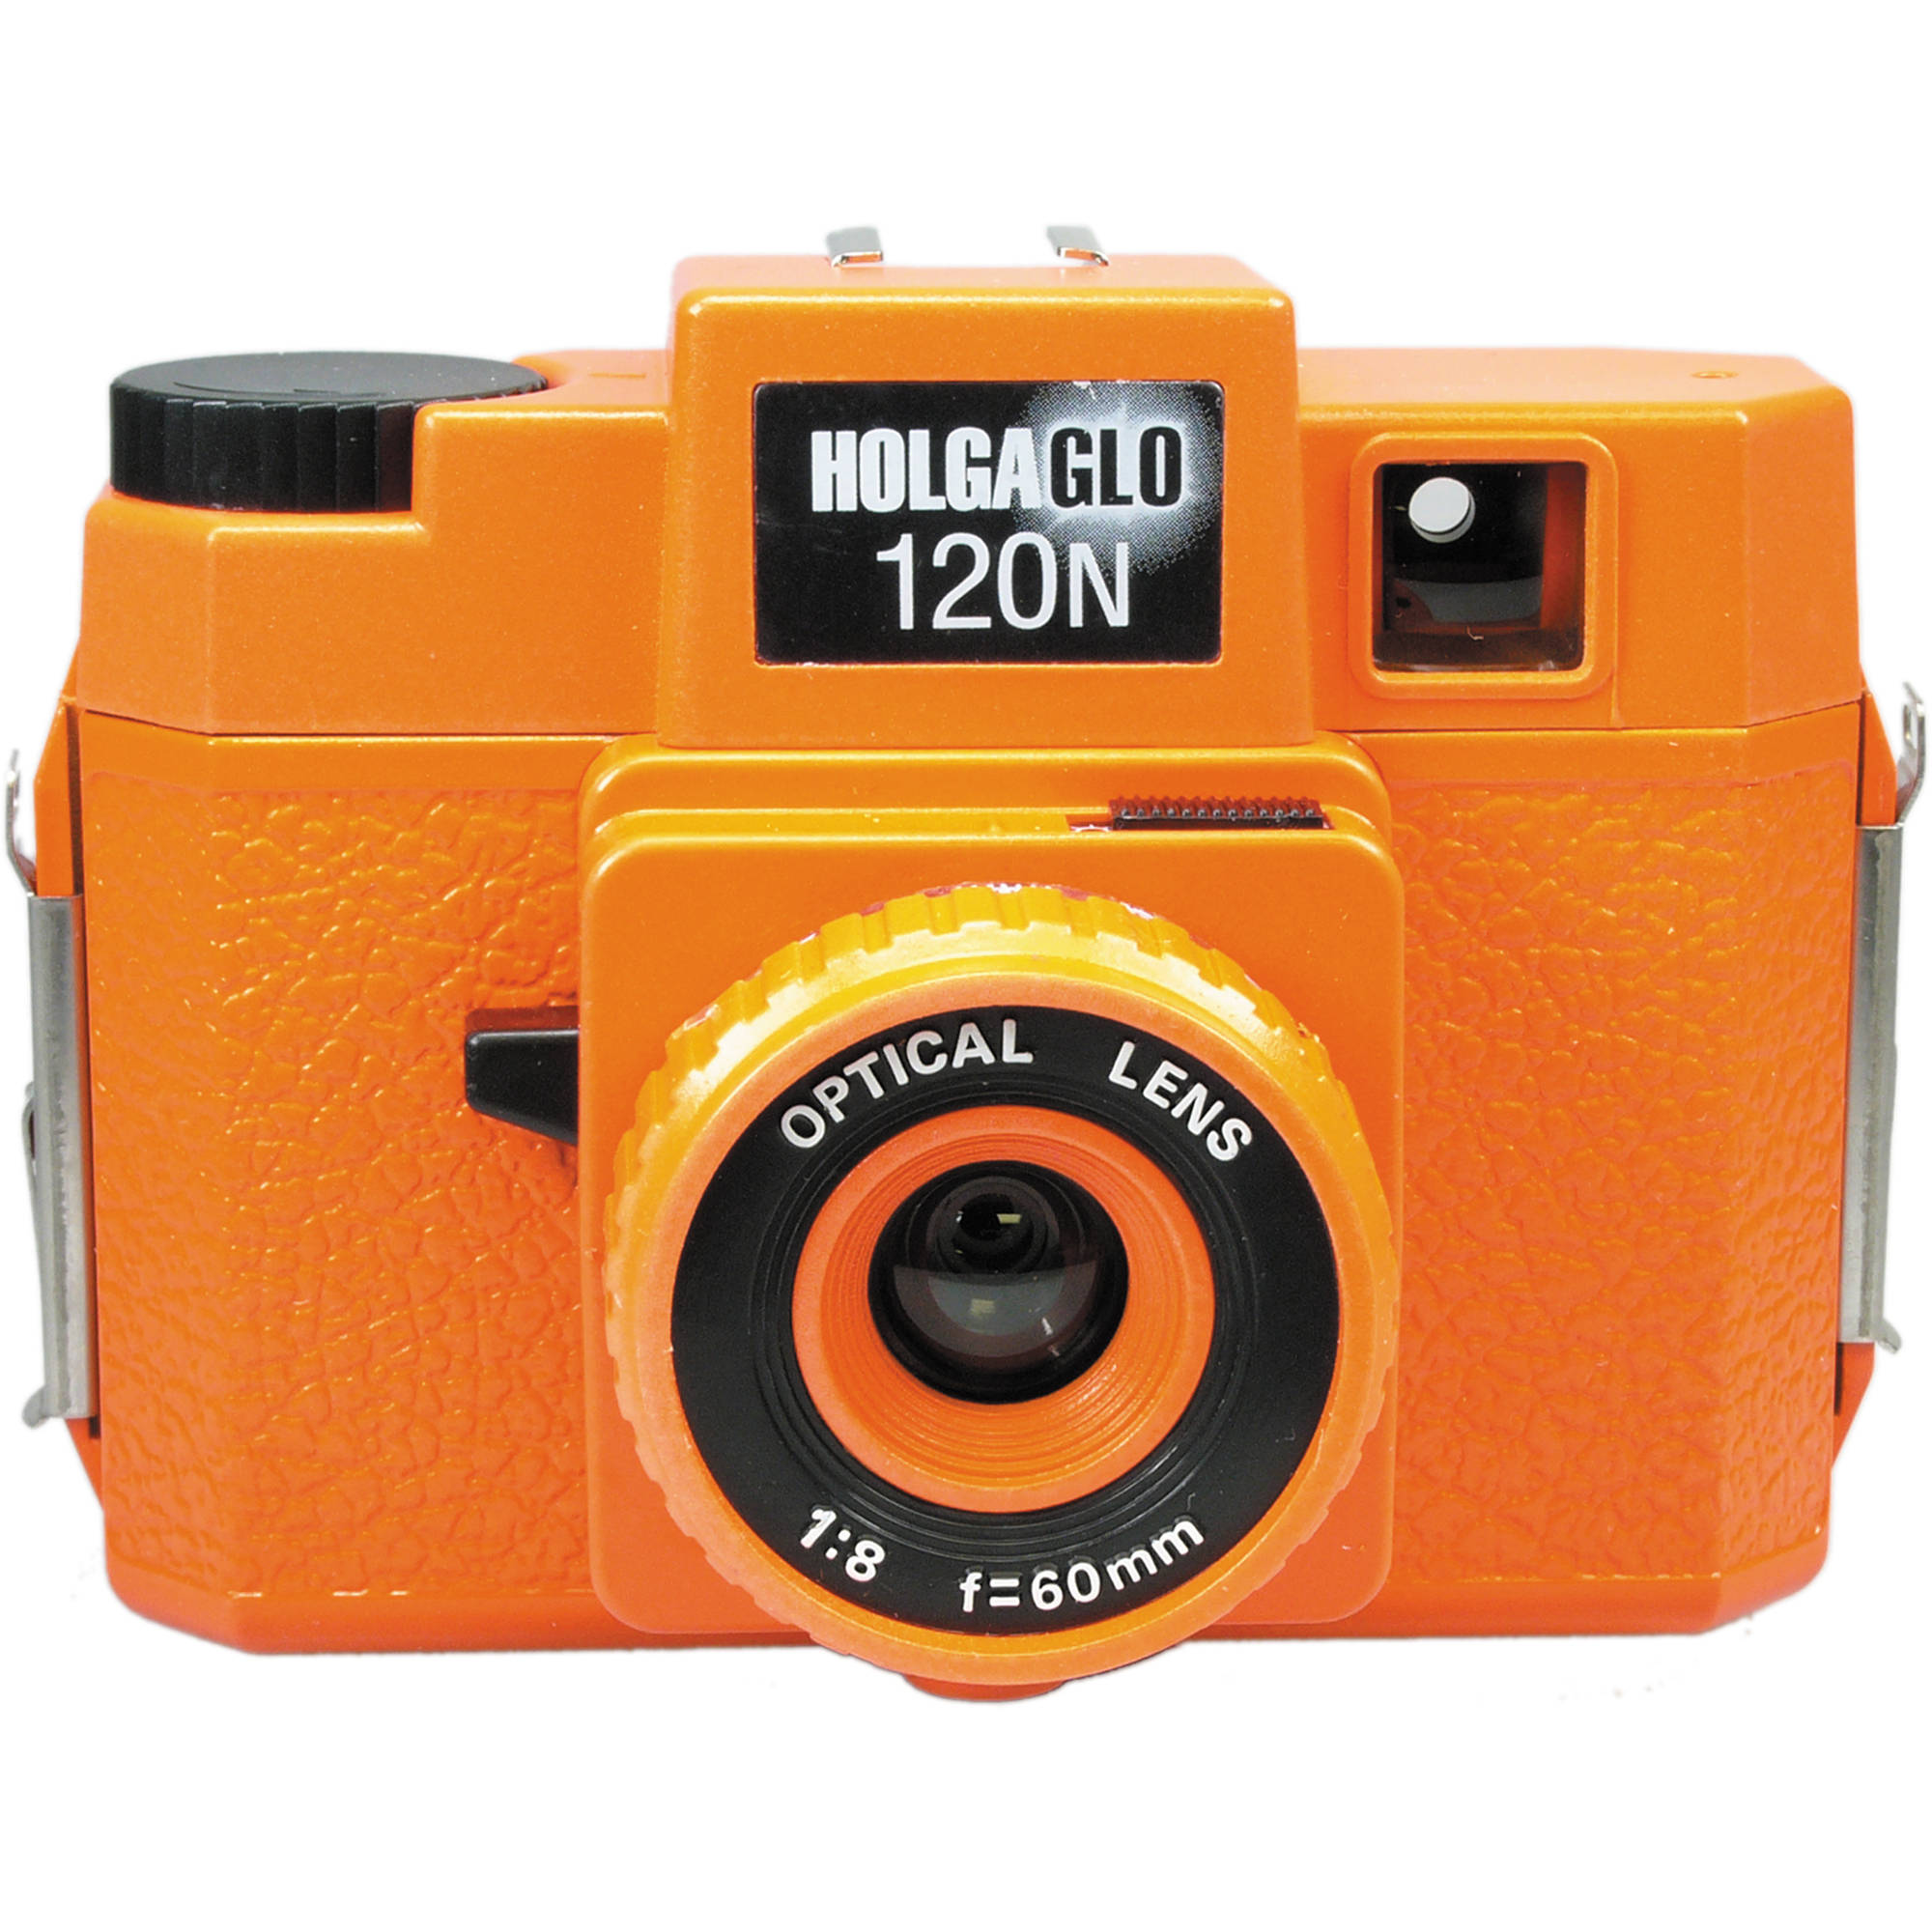 HolgaGlo 120N Glows in the Dark Camera (Aura Orange)